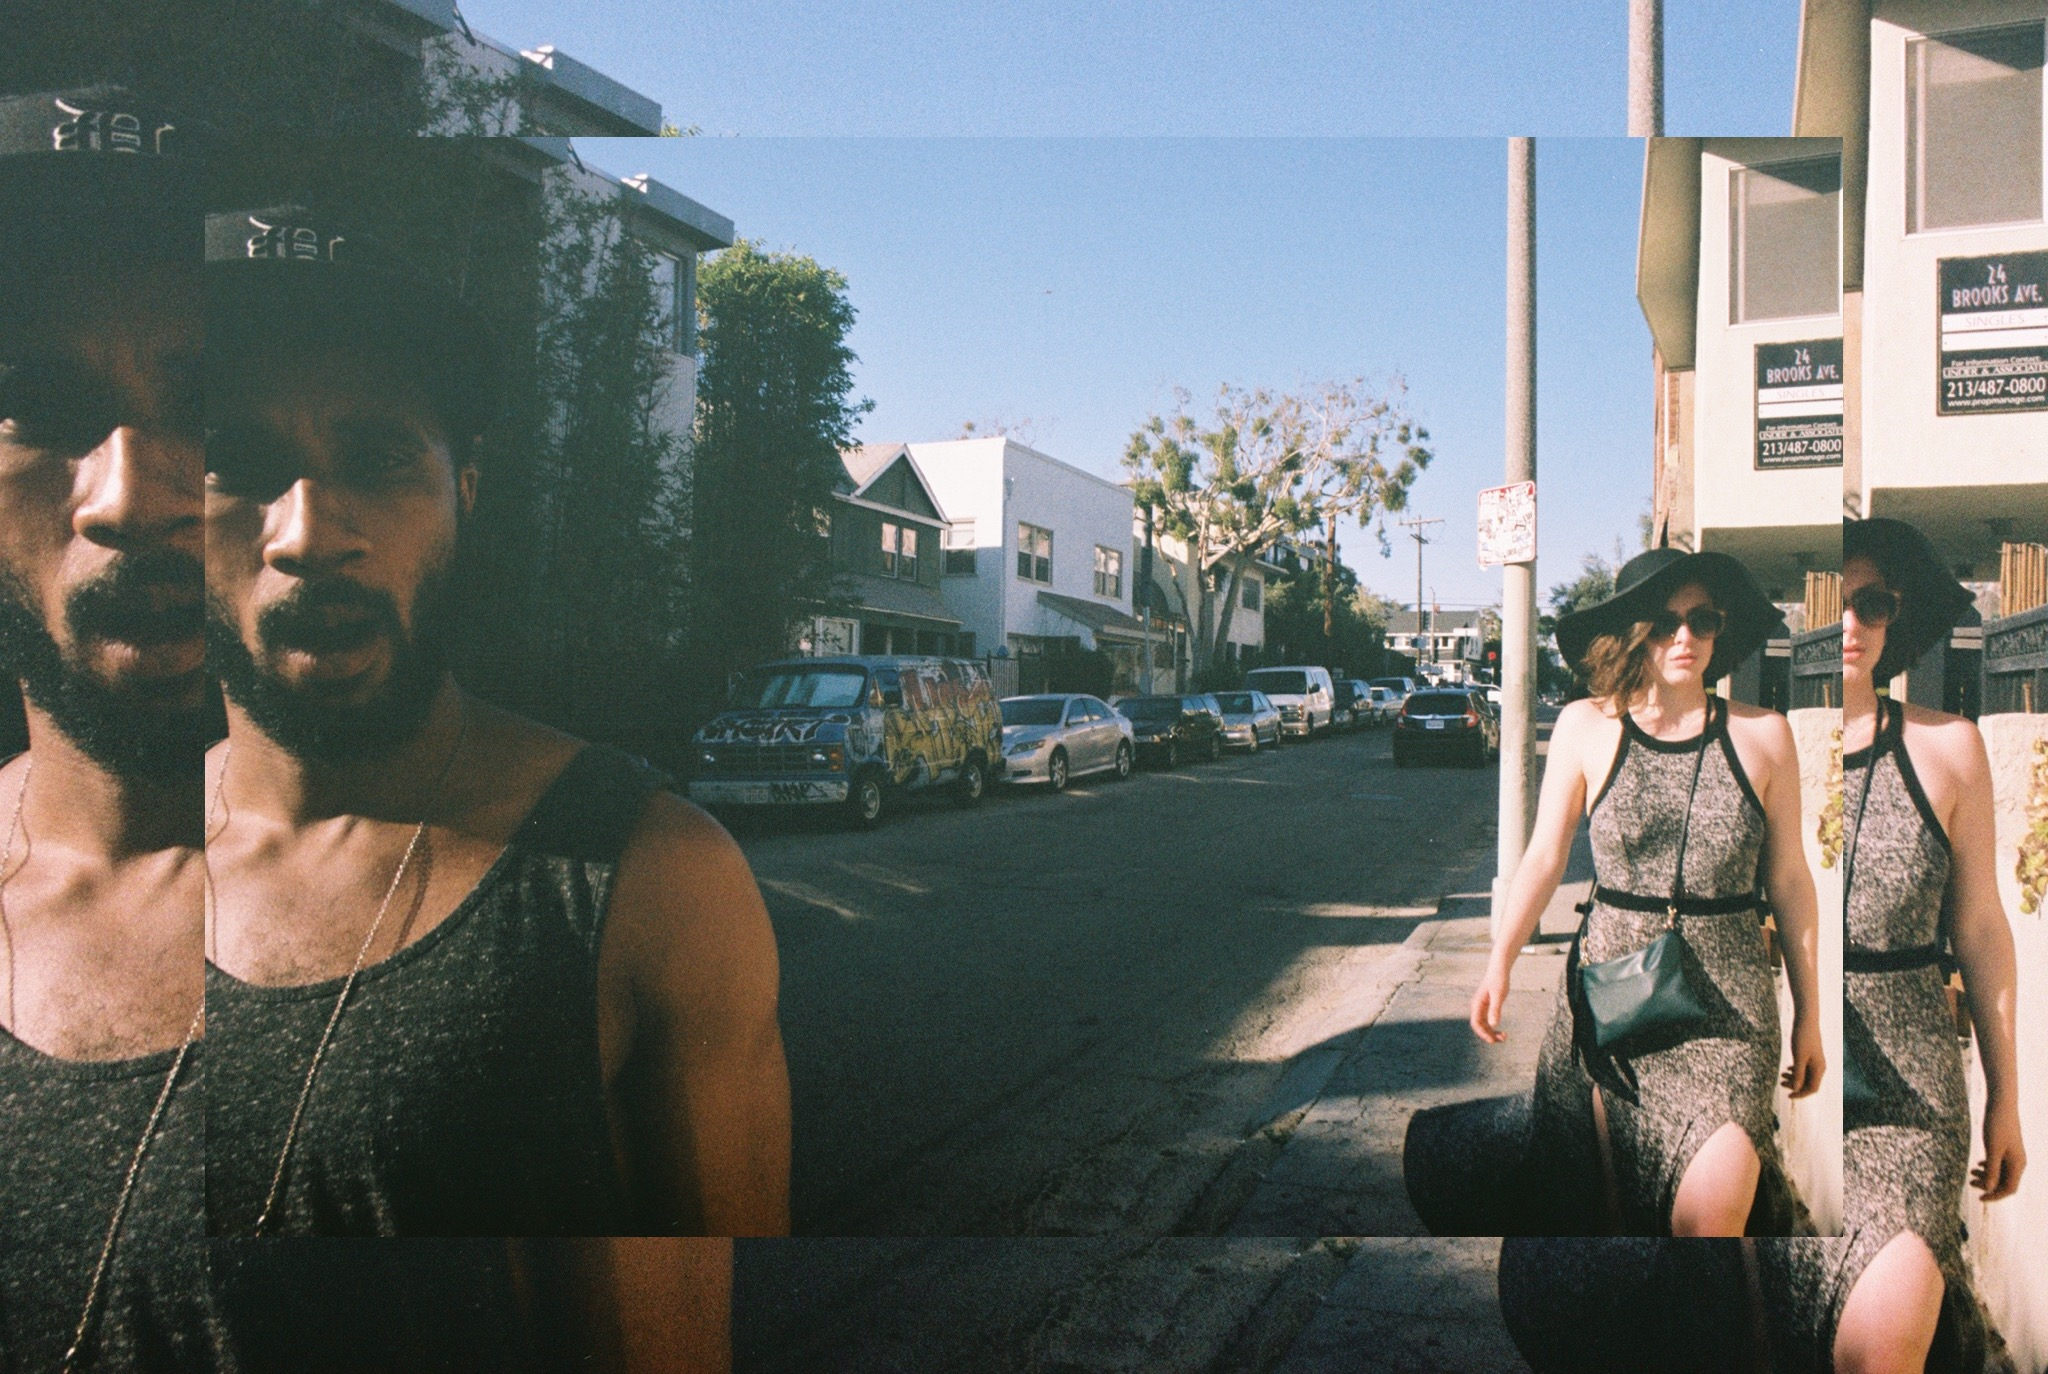 Crimson Dragons is a new Brooklyn-based soul duo project from Tasha Solomita and Bobby Wesley. Carried by prominent electric guitar and smooth vocals, they blend old & new, with influences ranging from Marvin Gaye to Lianne La Havas.